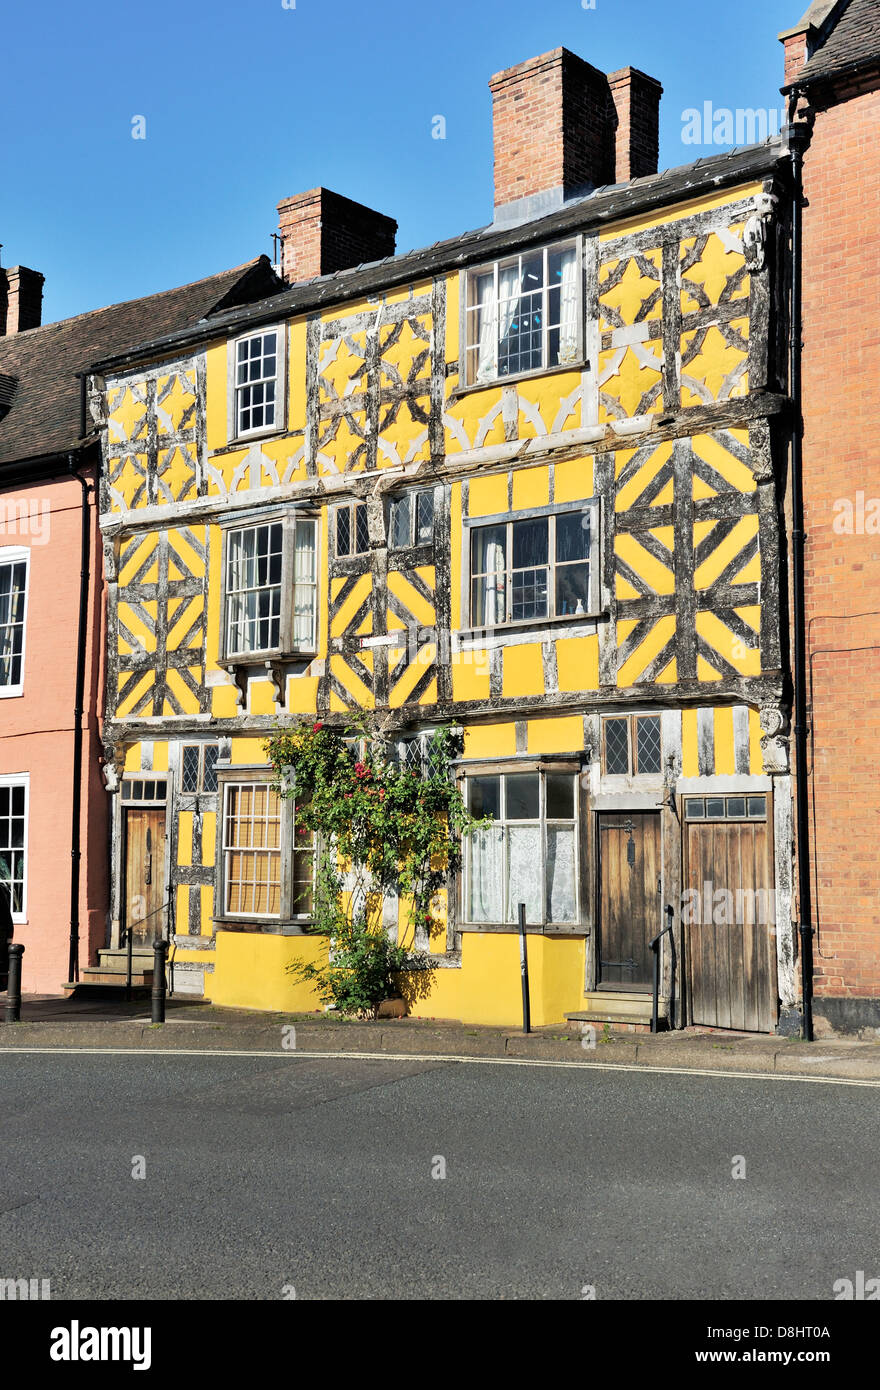 Old Tudor half-timbered style houses in Ludlow, Shropshire, England. Lower end of Corve Street - Stock Image